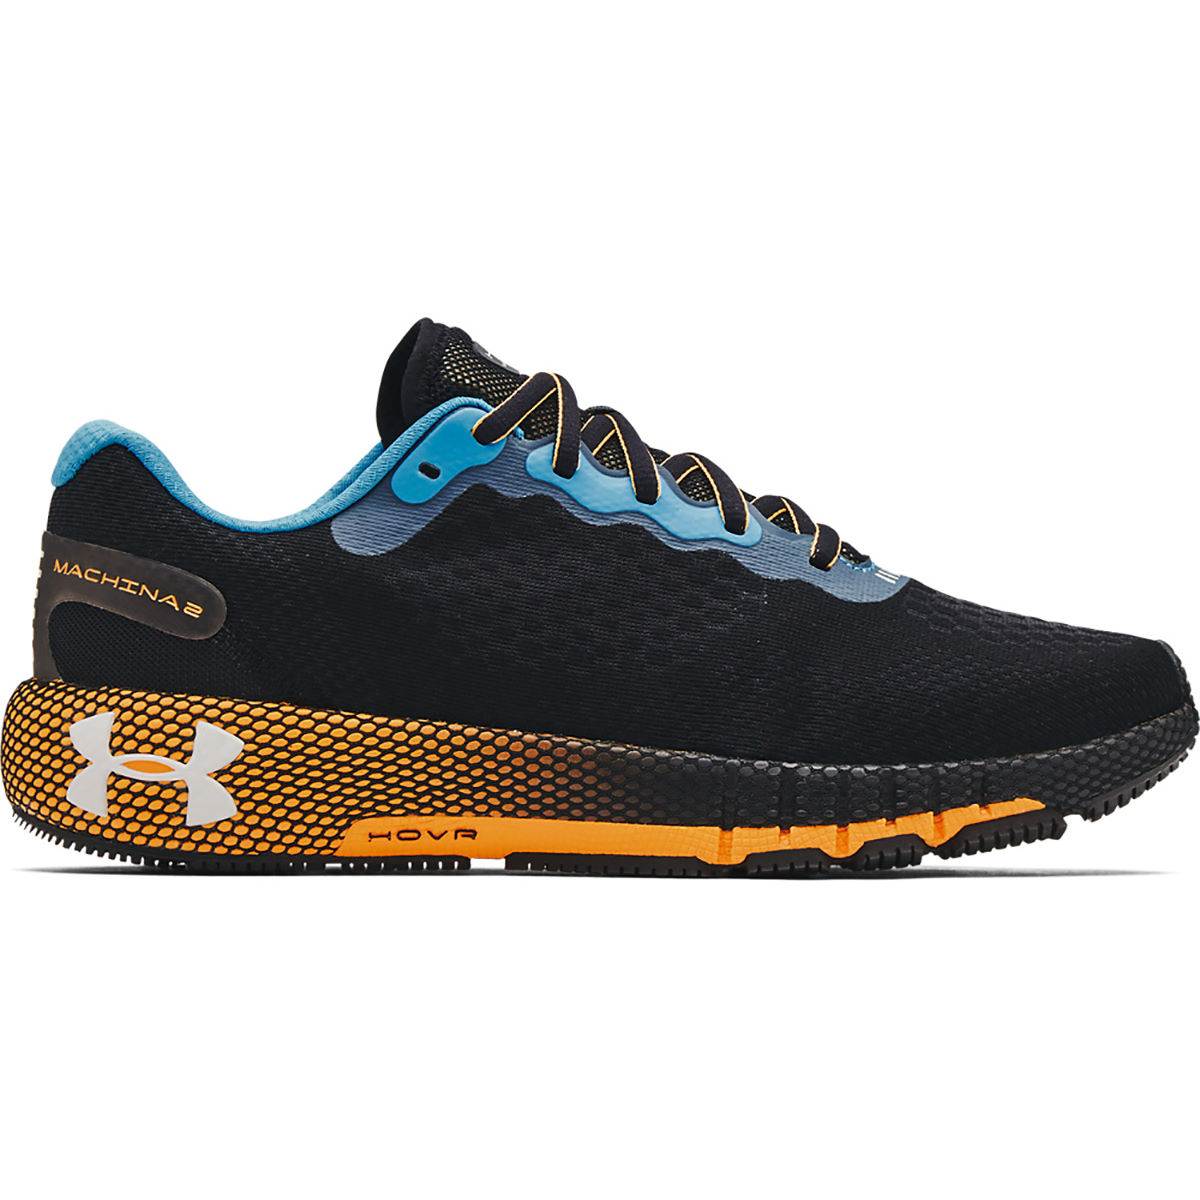 Under Armour HOVR Machina 2 Running Shoes   Running Shoes